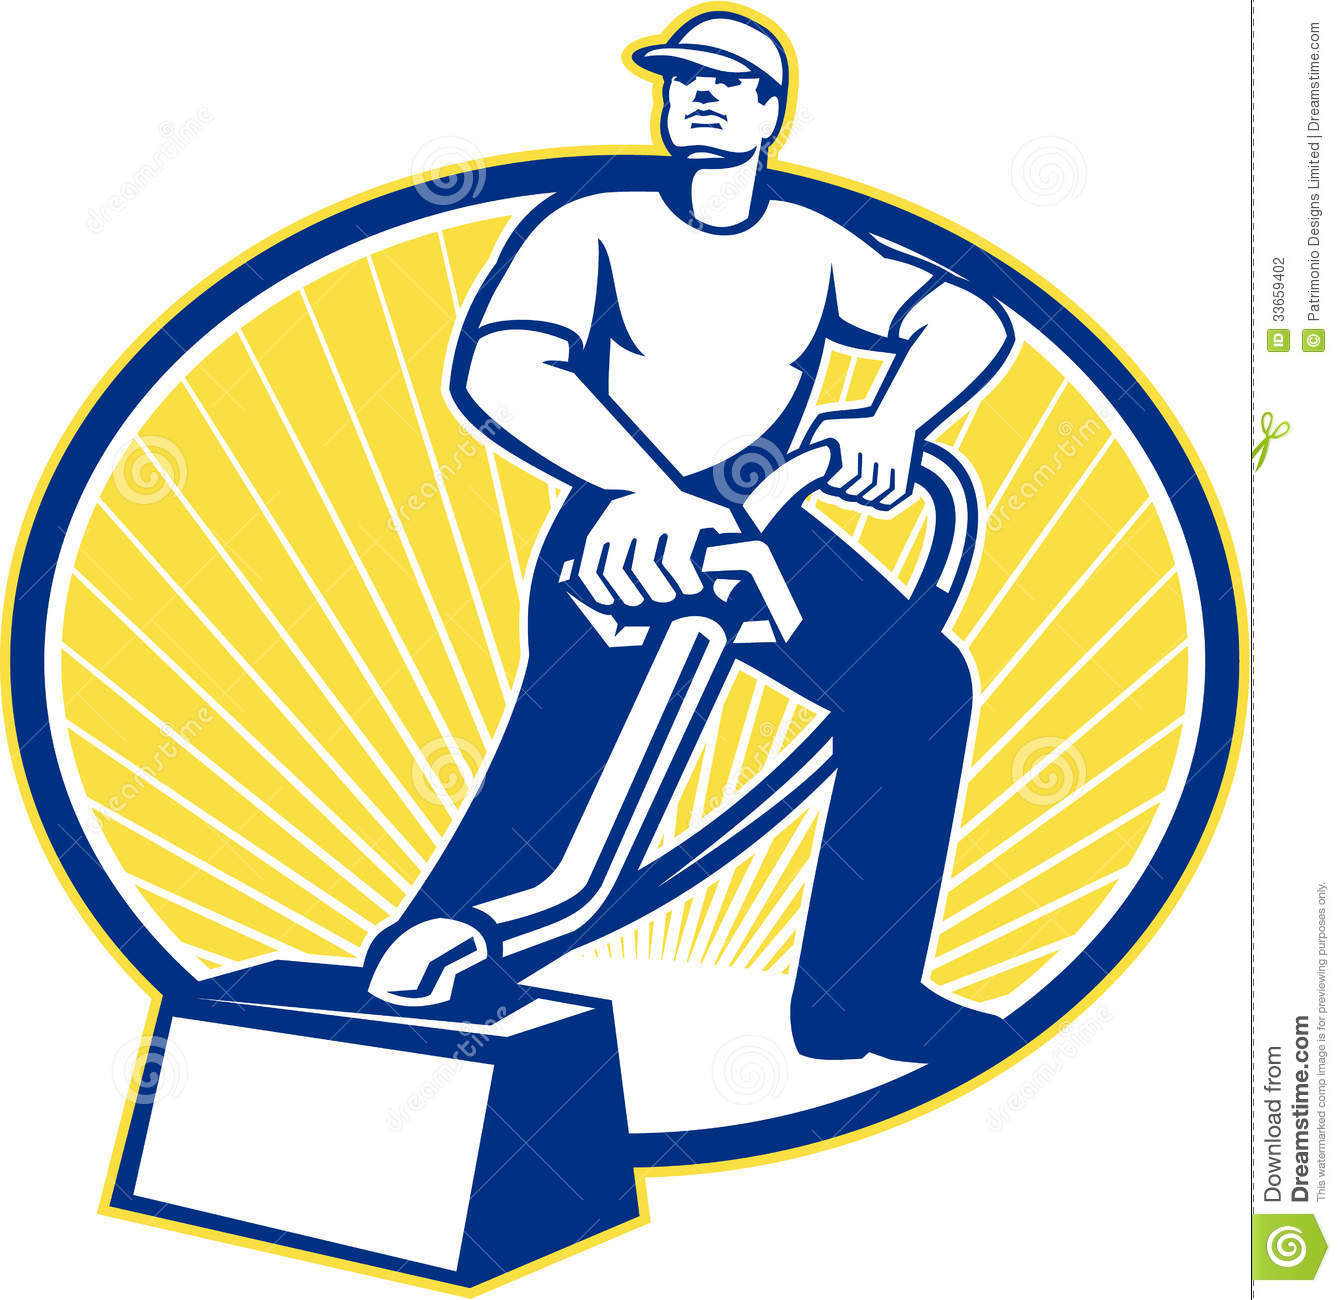 clip art illustrations cleaning - photo #26